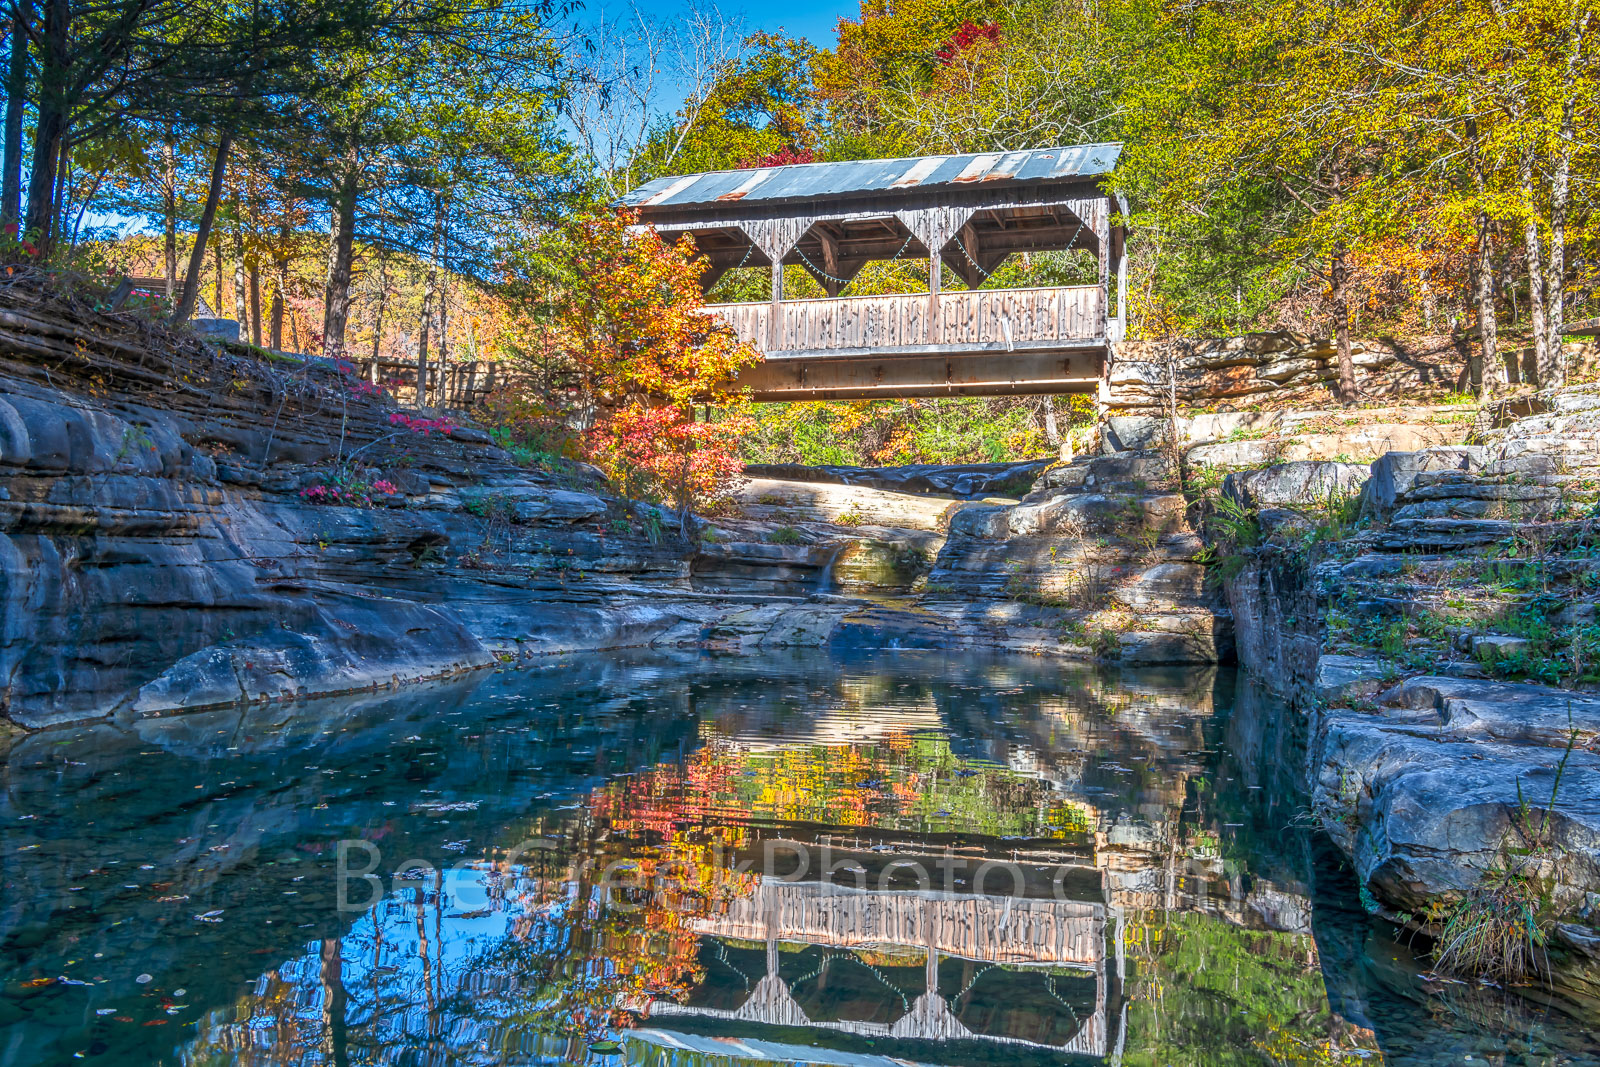 covered bridge, ozarks, fall, autumn, bridge, color, reflection, reflections, autumn, day, pool, water, creek, natural, wilderness, forest,